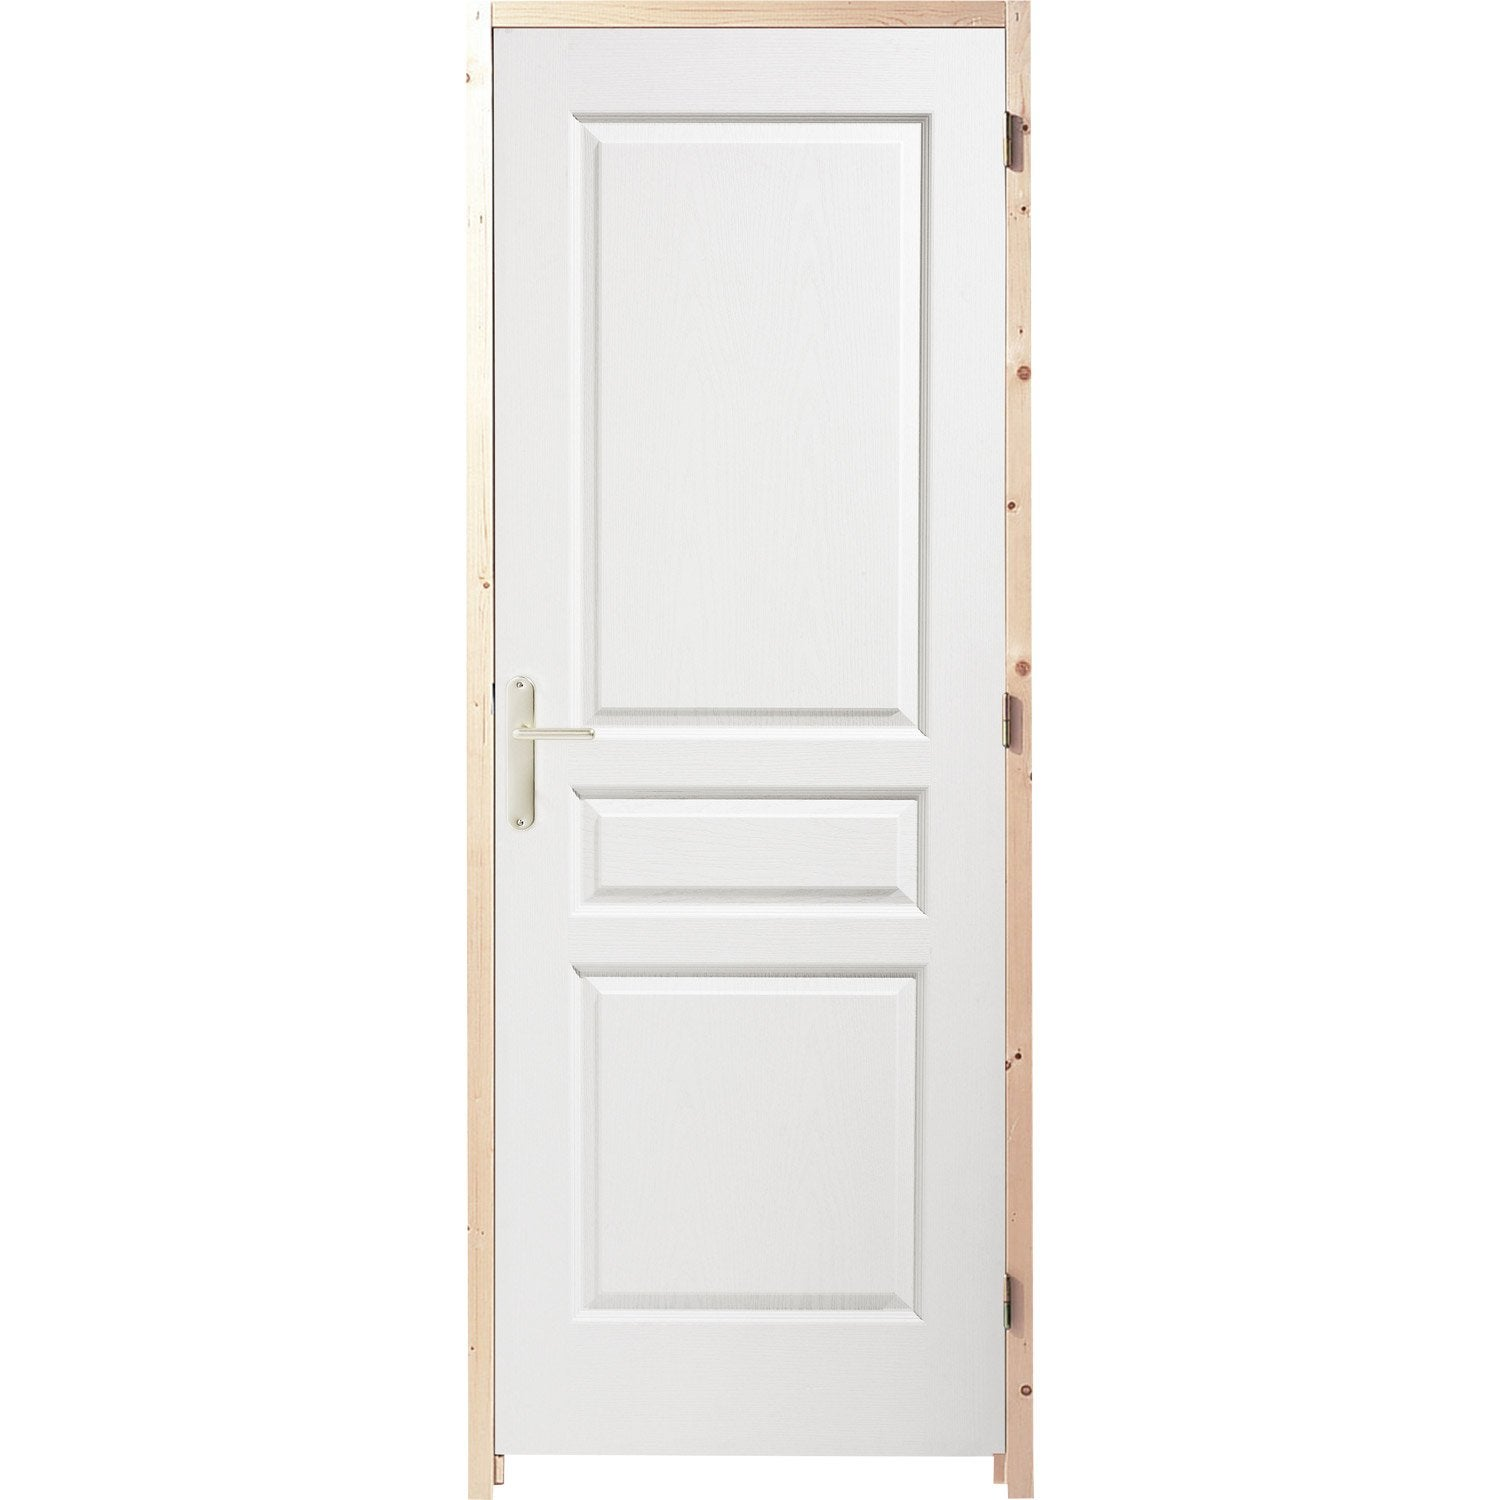 Bloc porte acoustique postform x cm leroy merlin for Hauteur porte interieur